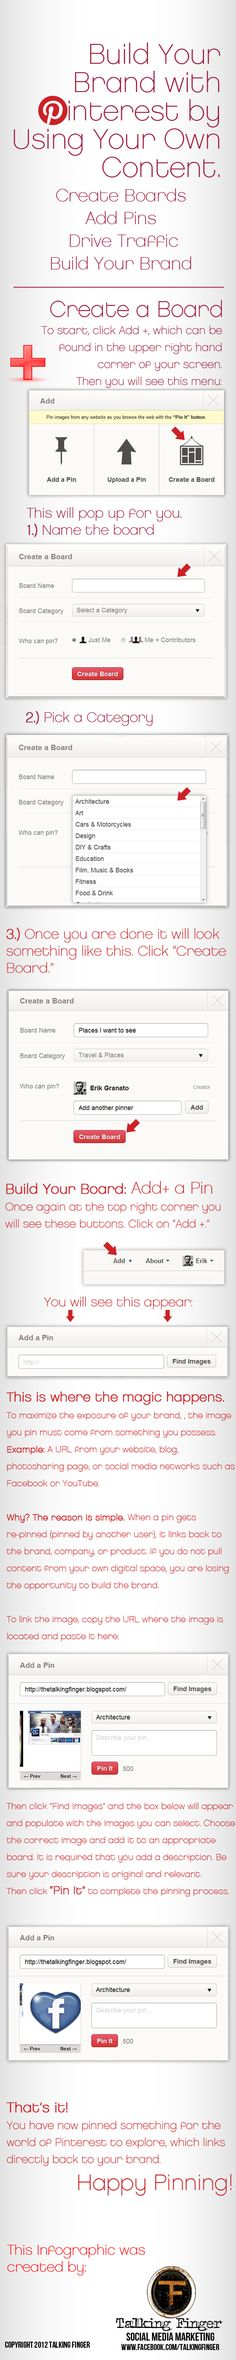 Build your #Brand with #Pinterest #ccentral #fleytong